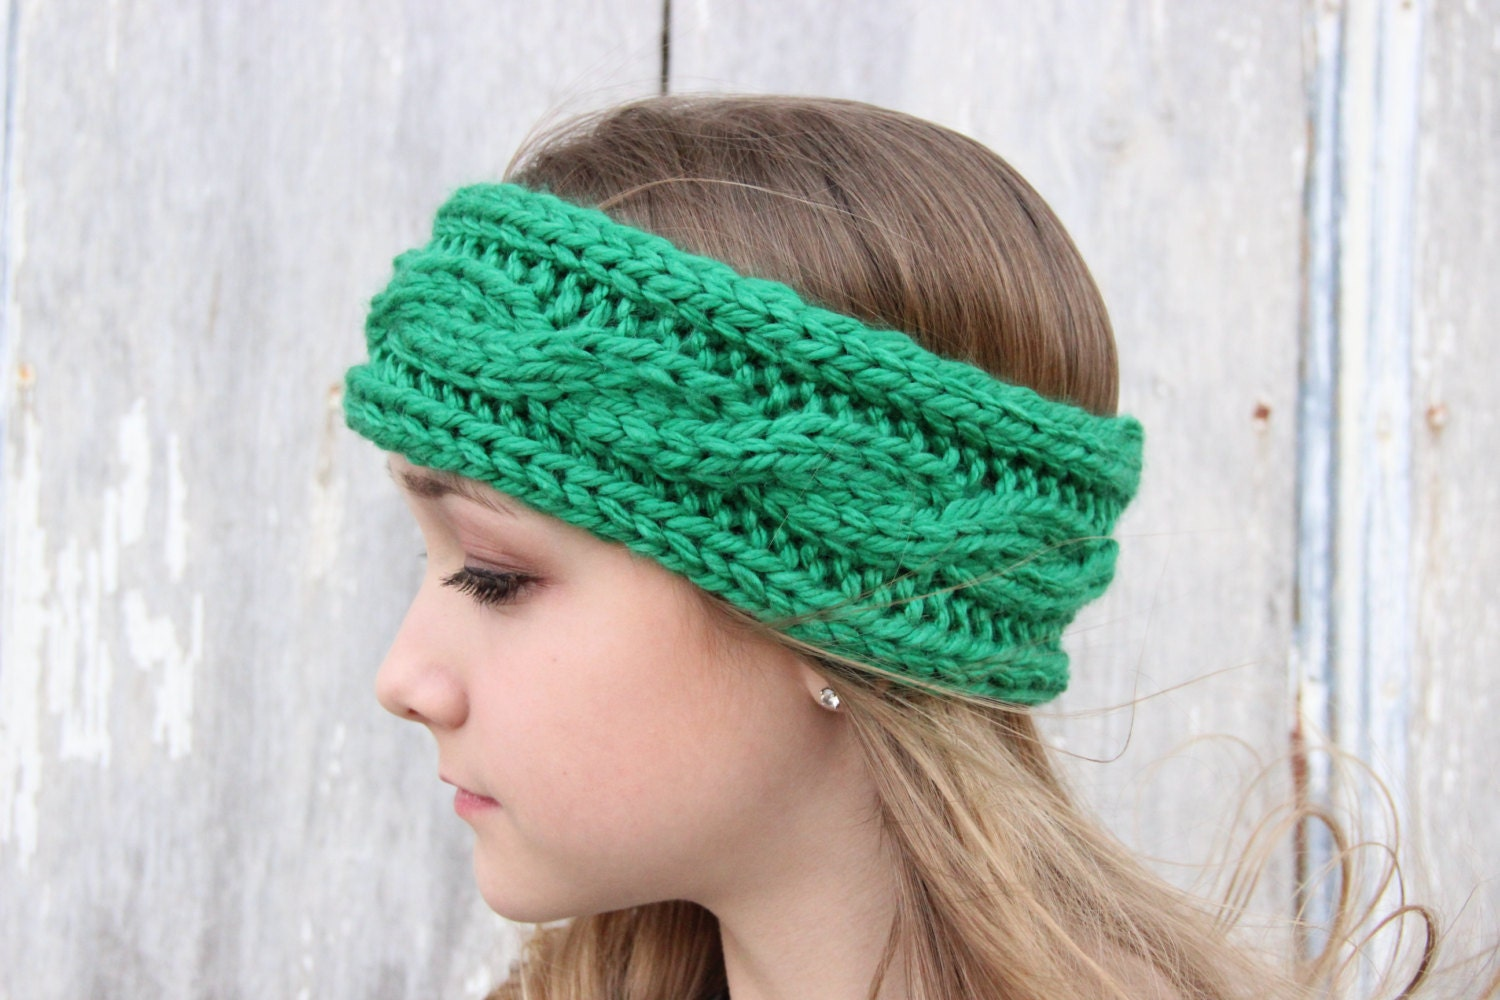 How To Knit Color Patterns : Headband Cable Knit Knitted Headband Winter by SerbyStitches